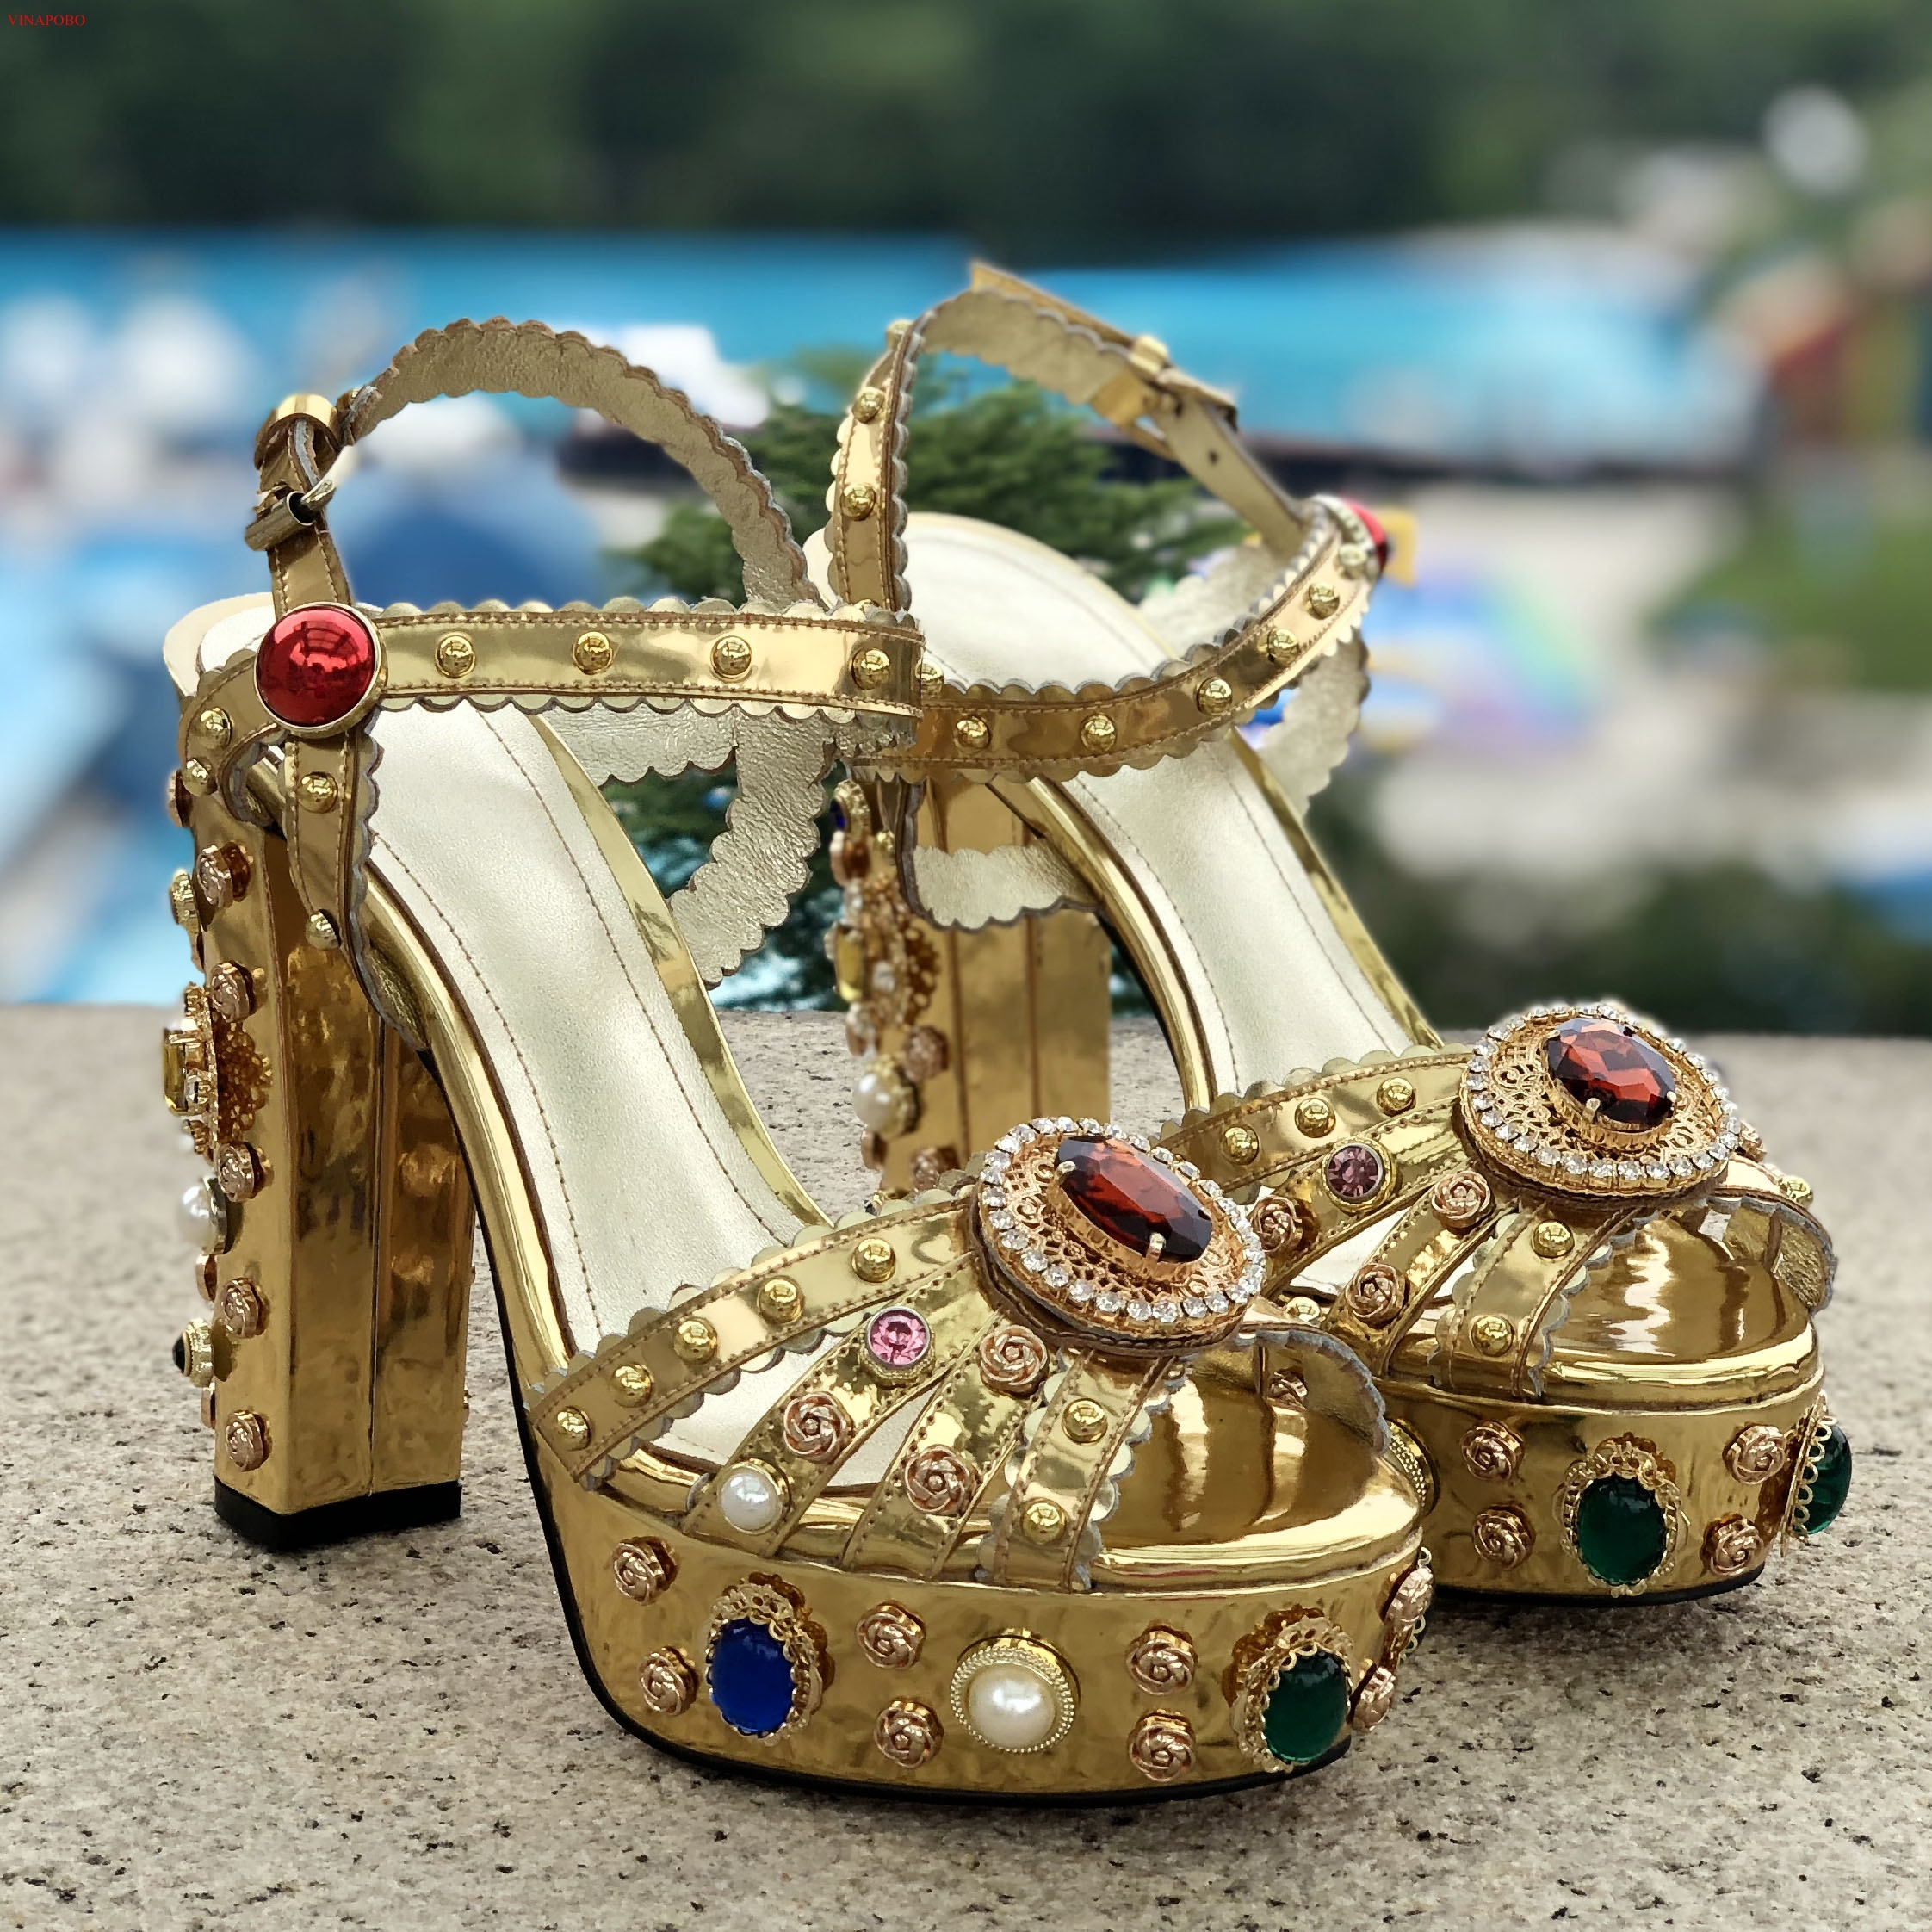 Vunapobo Newest Gold Leather Rivets Studded High Heel Sandals Peep Toe Crystal Embellished Platofrm Thick Heels wedding Shoes